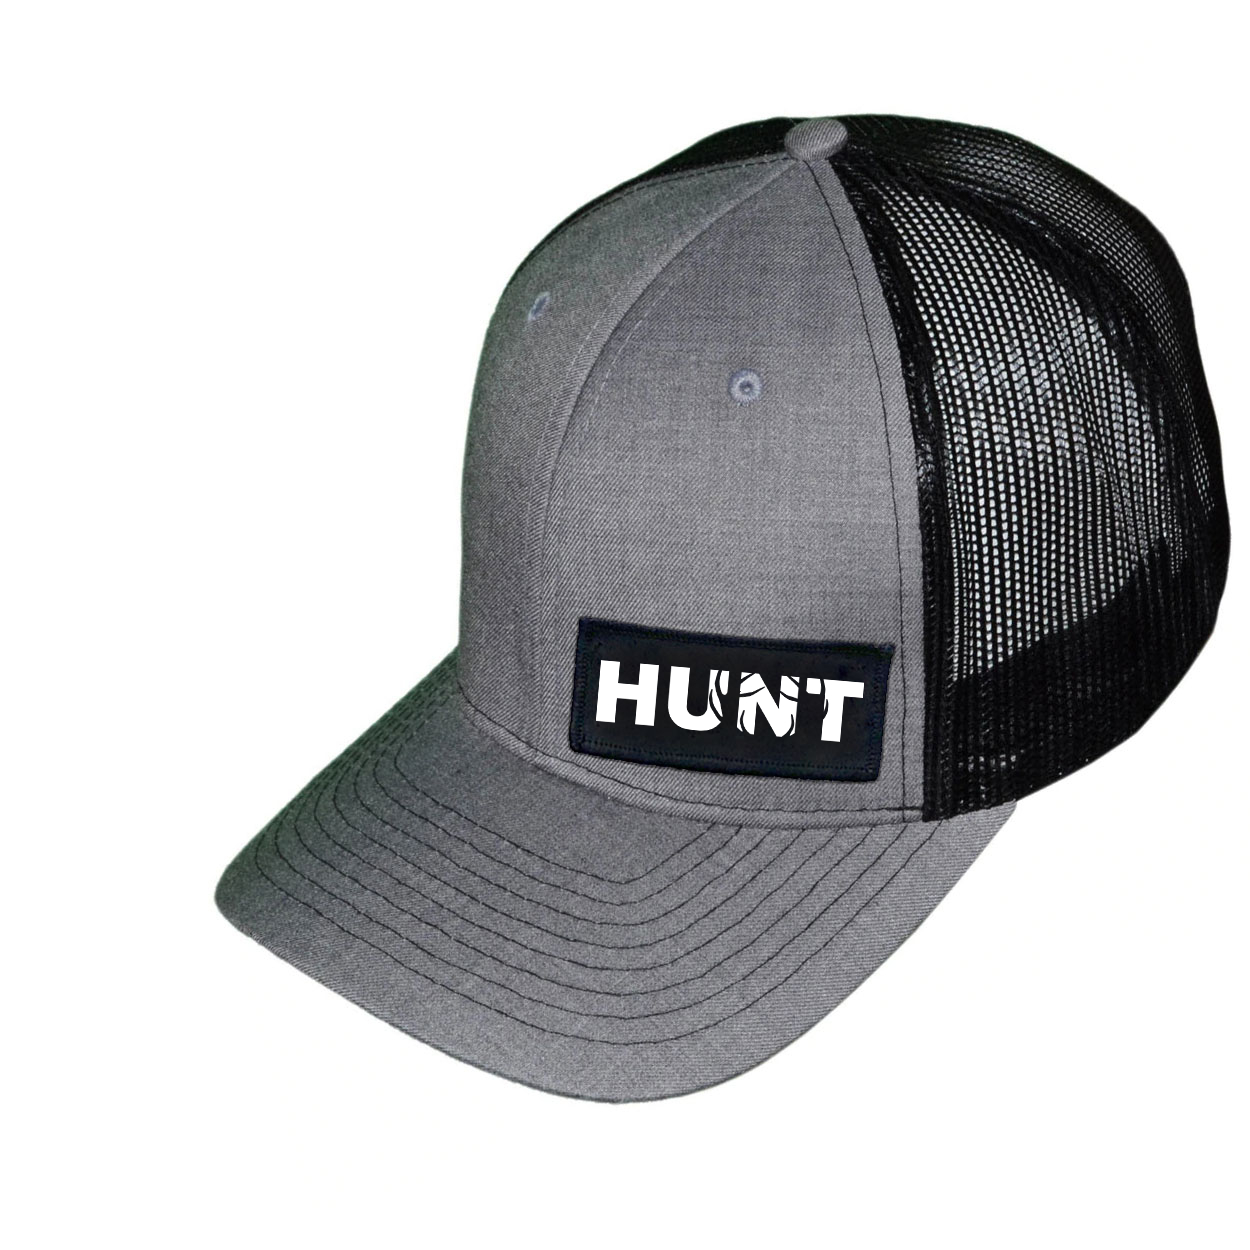 Hunt Rack Logo Night Out Woven Patch Snapback Trucker Hat Heather Gray/Black (White Logo)